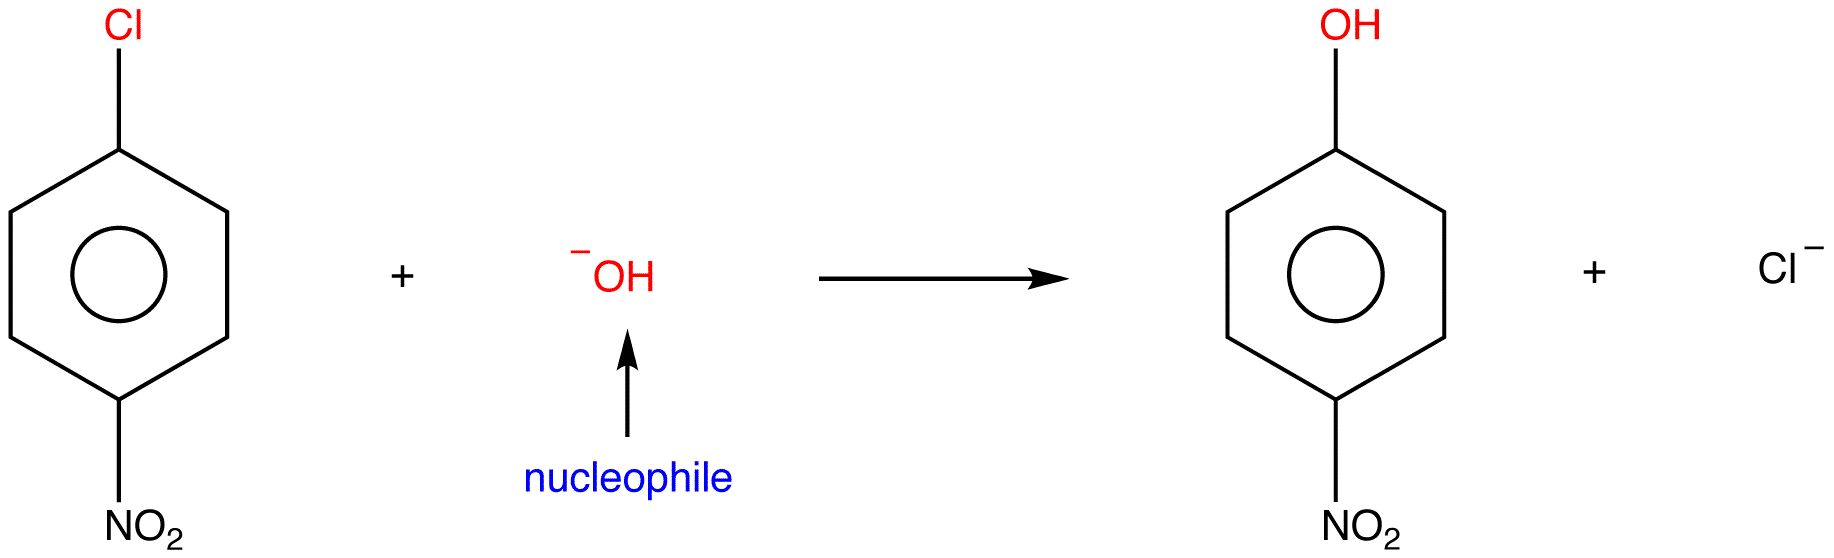 nucleophilic aromatic substitution of 2 4 dinitrochlorobenze 2,4-dinitrophenol is formed via an addition-elimination nucleophilic aromatic substitution mechanism when 2,4-dinitrochlorobenzene is treated with sodium hydroxide at 100°c followed by protonation: a) 2,4-dinitrophenol is formed via an addition-elimination nucleophilic aromatic substitution mechanism.